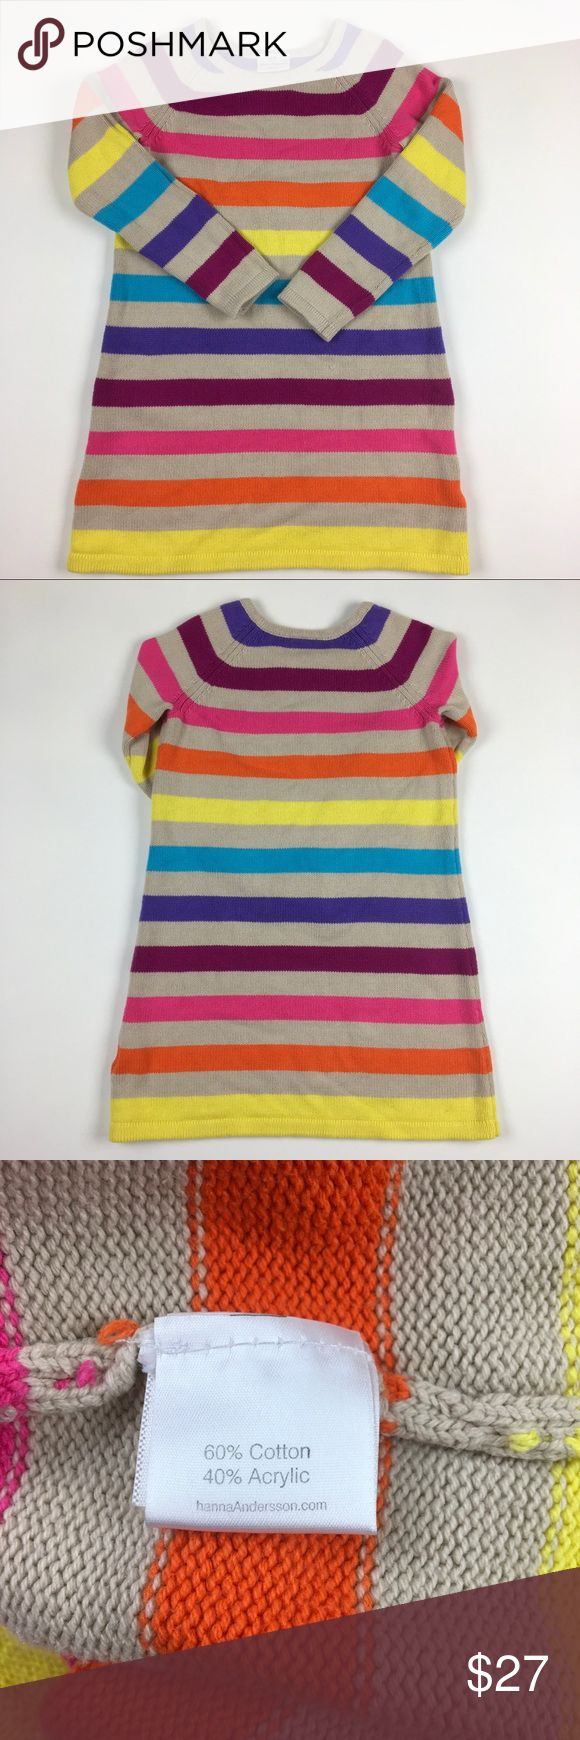 Hanna Andersson Sweater Dress Hanna Andersson rainbow stripe sweater dress size EU 130/ US 8-girls Hanna Andersson Shirts & Tops Sweaters